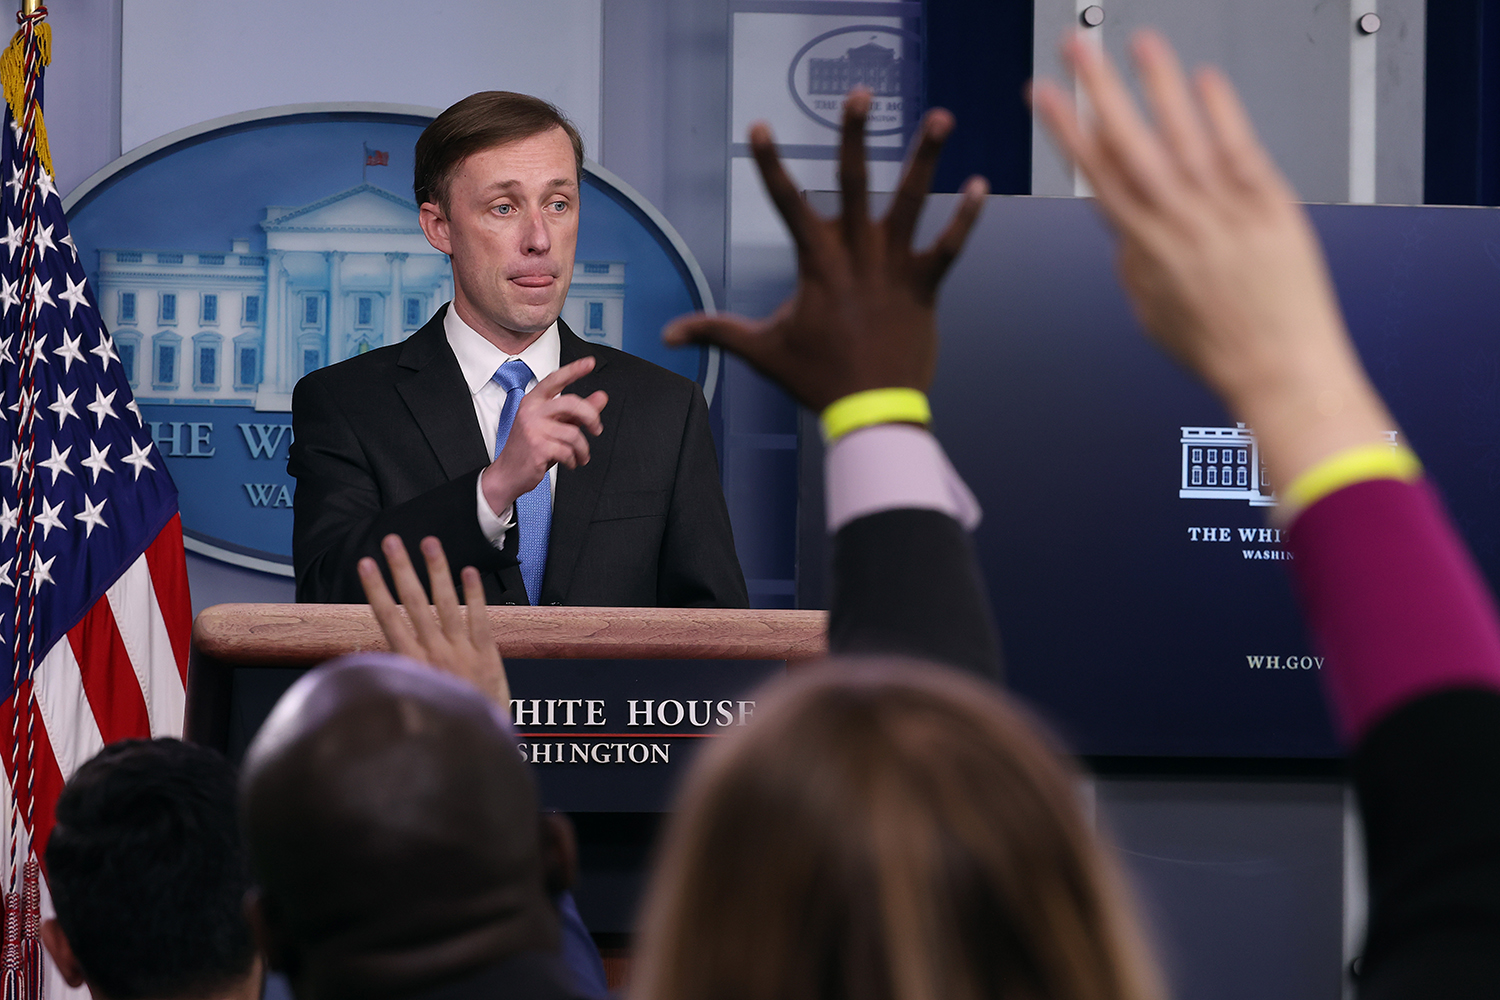 Jake Sullivan in the White House briefing room.